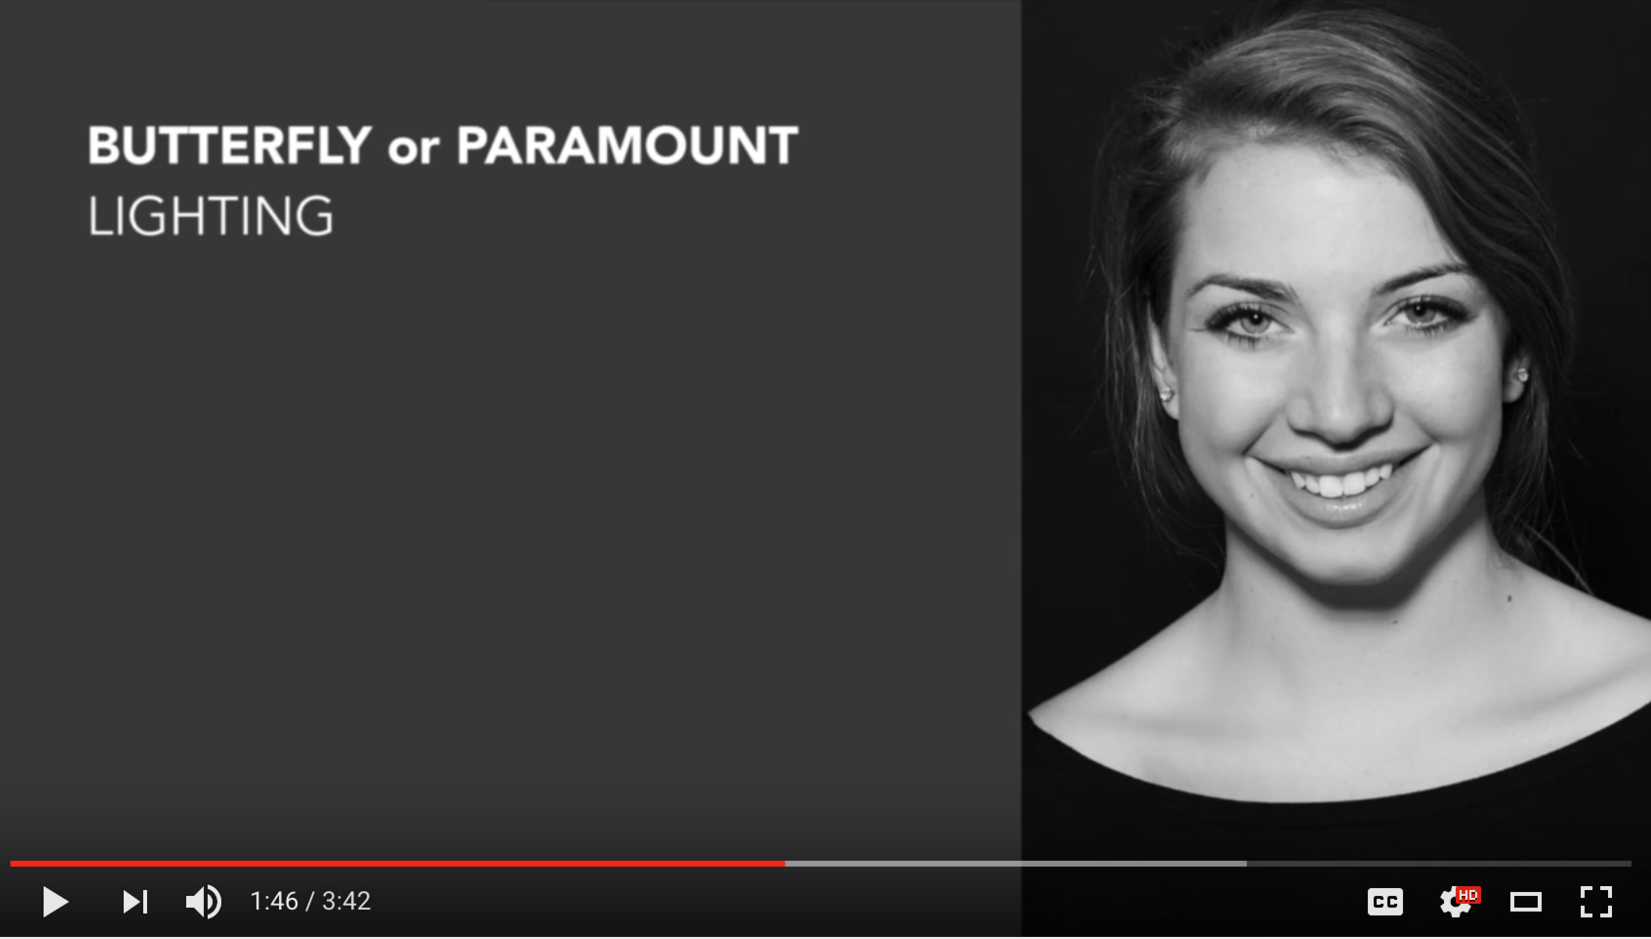 Five Facial Lighting Patterns for Portrait Photography